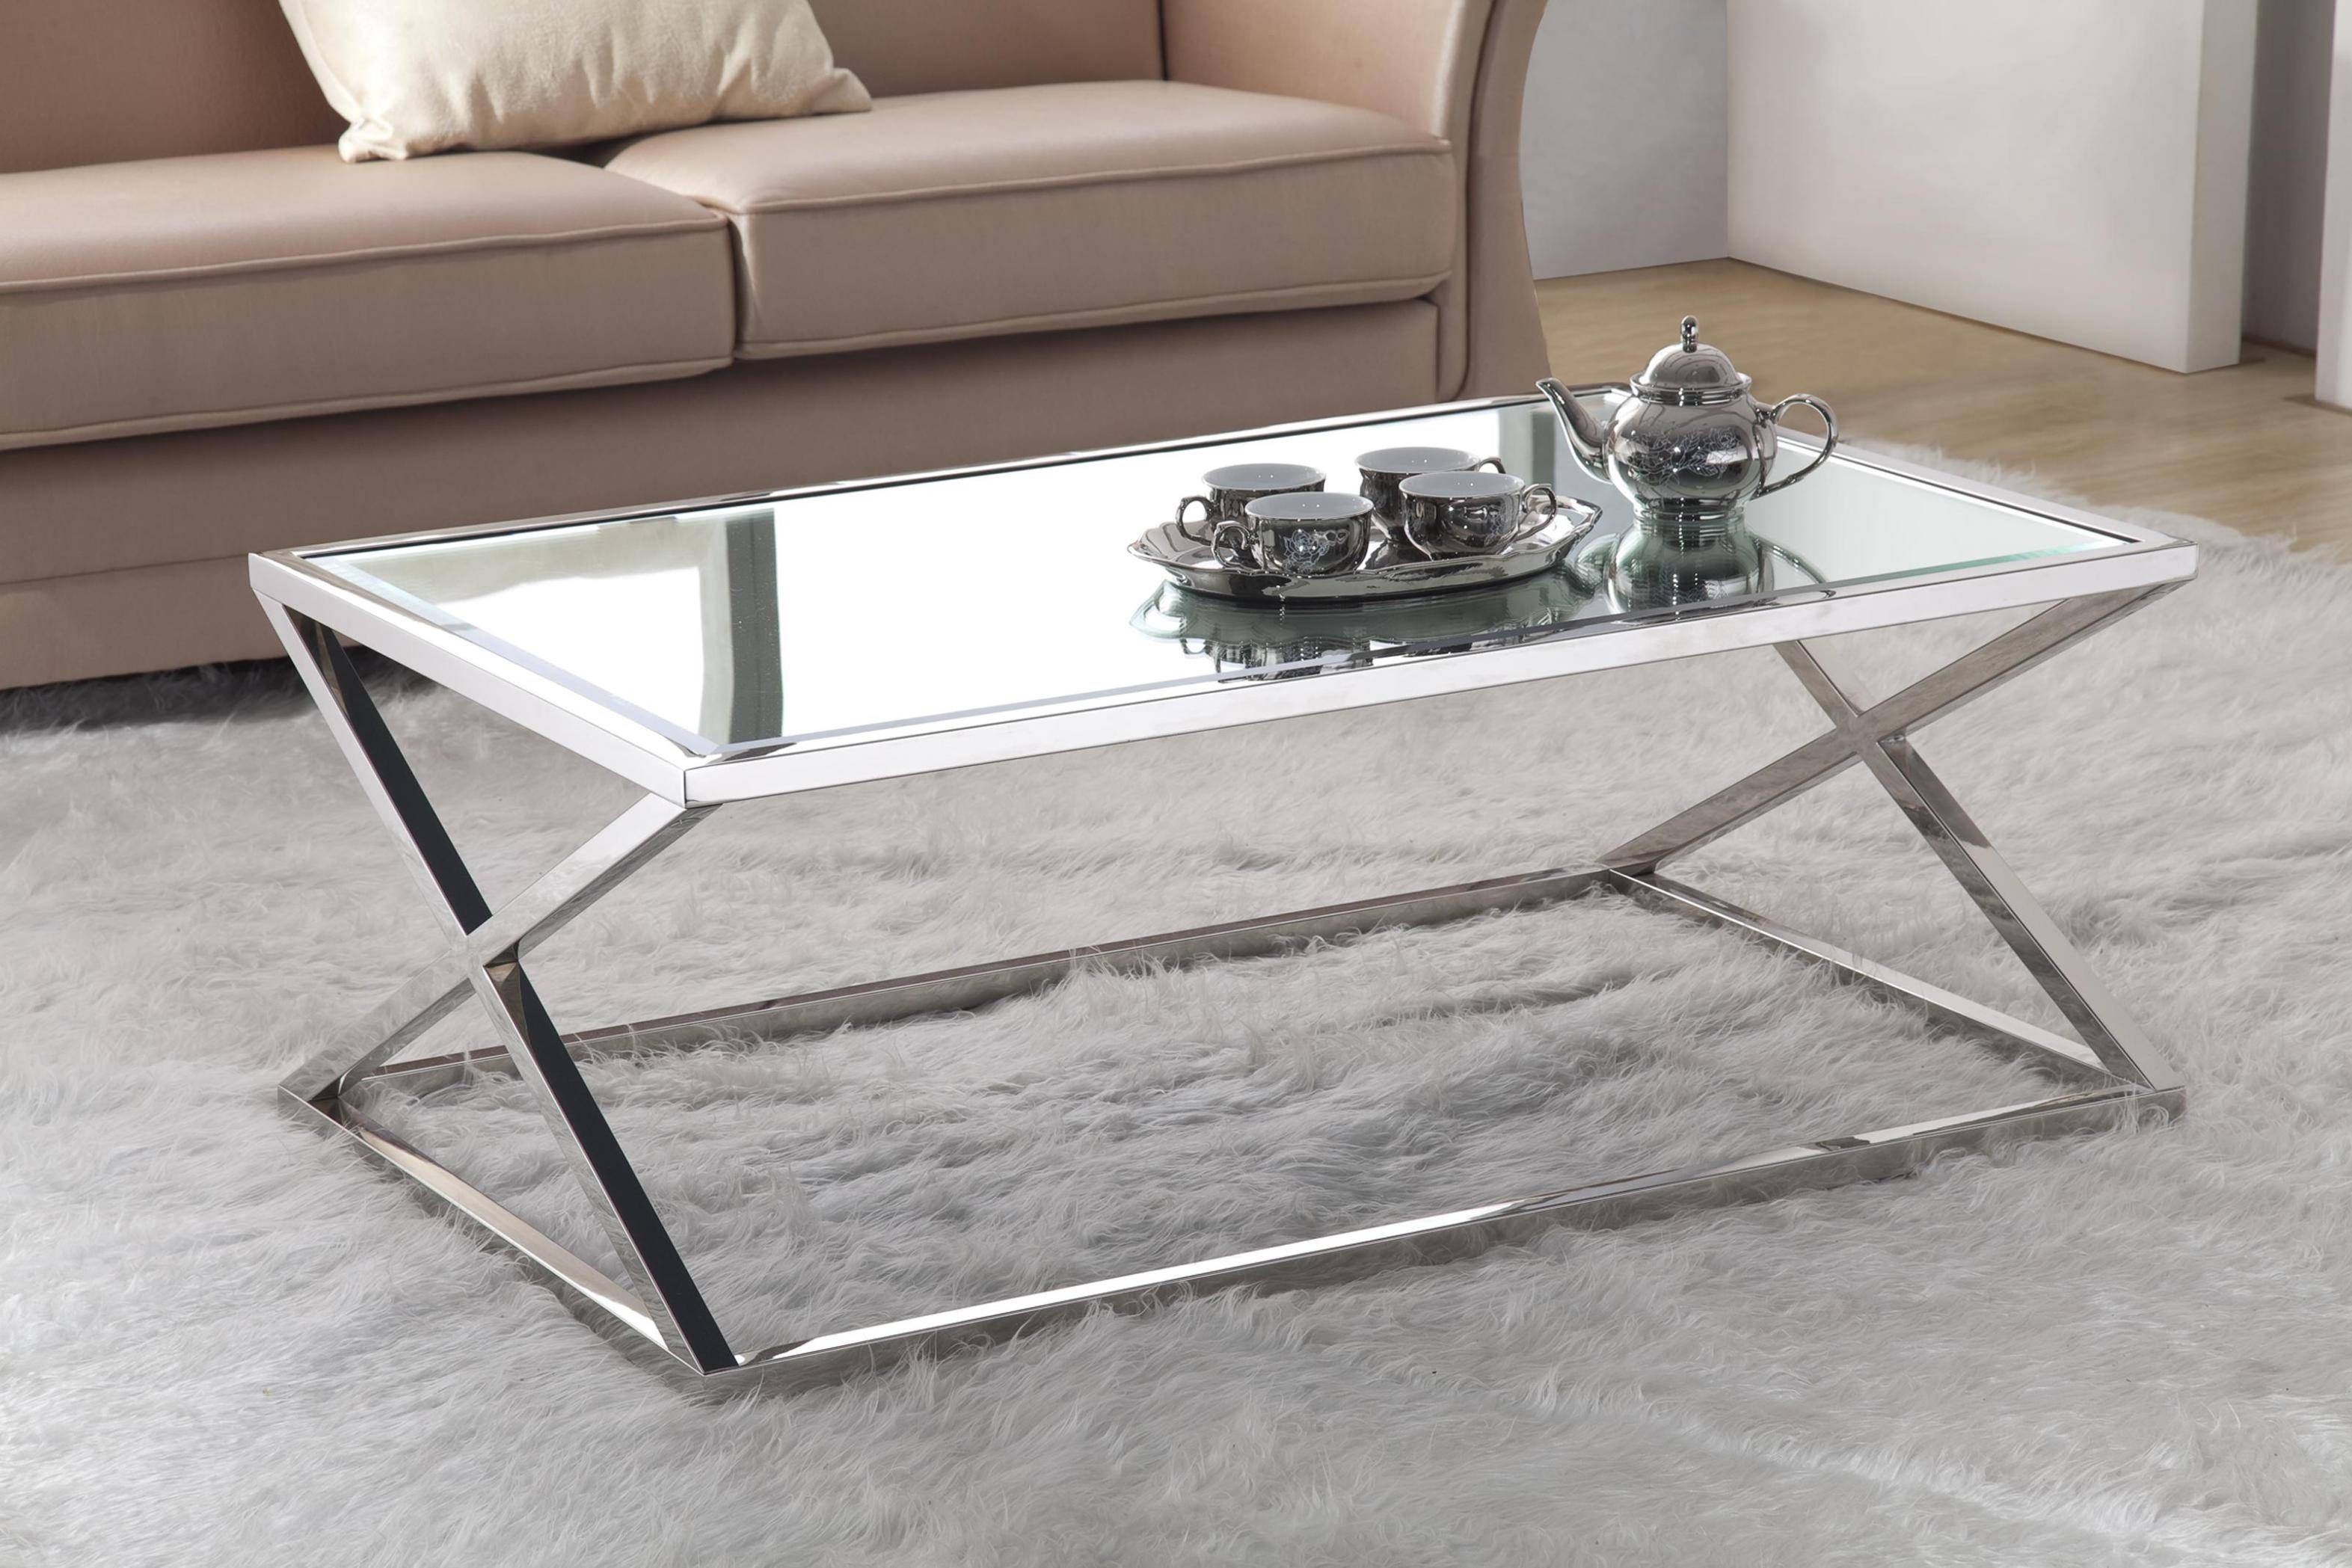 Stainless Steel Trunk Coffee Table Remarkable On Ideas Glass And pertaining to Stainless Steel Trunk Coffee Tables (Image 17 of 30)